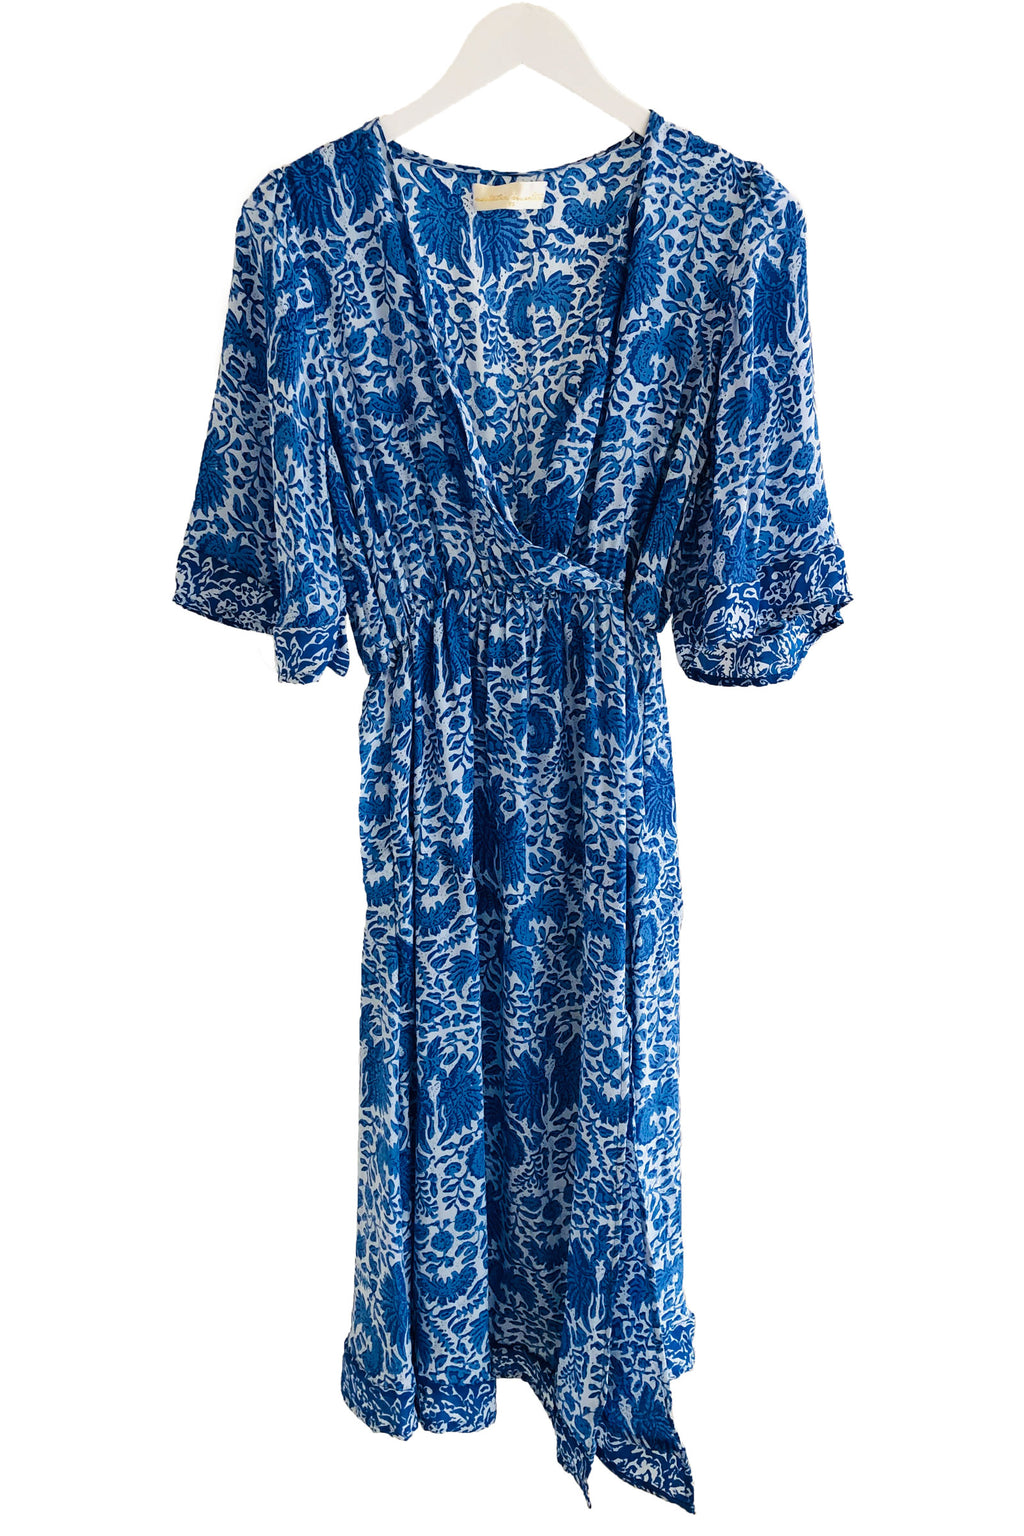 Natalie Martin Coco Dress in Wing Print Corfu Blue